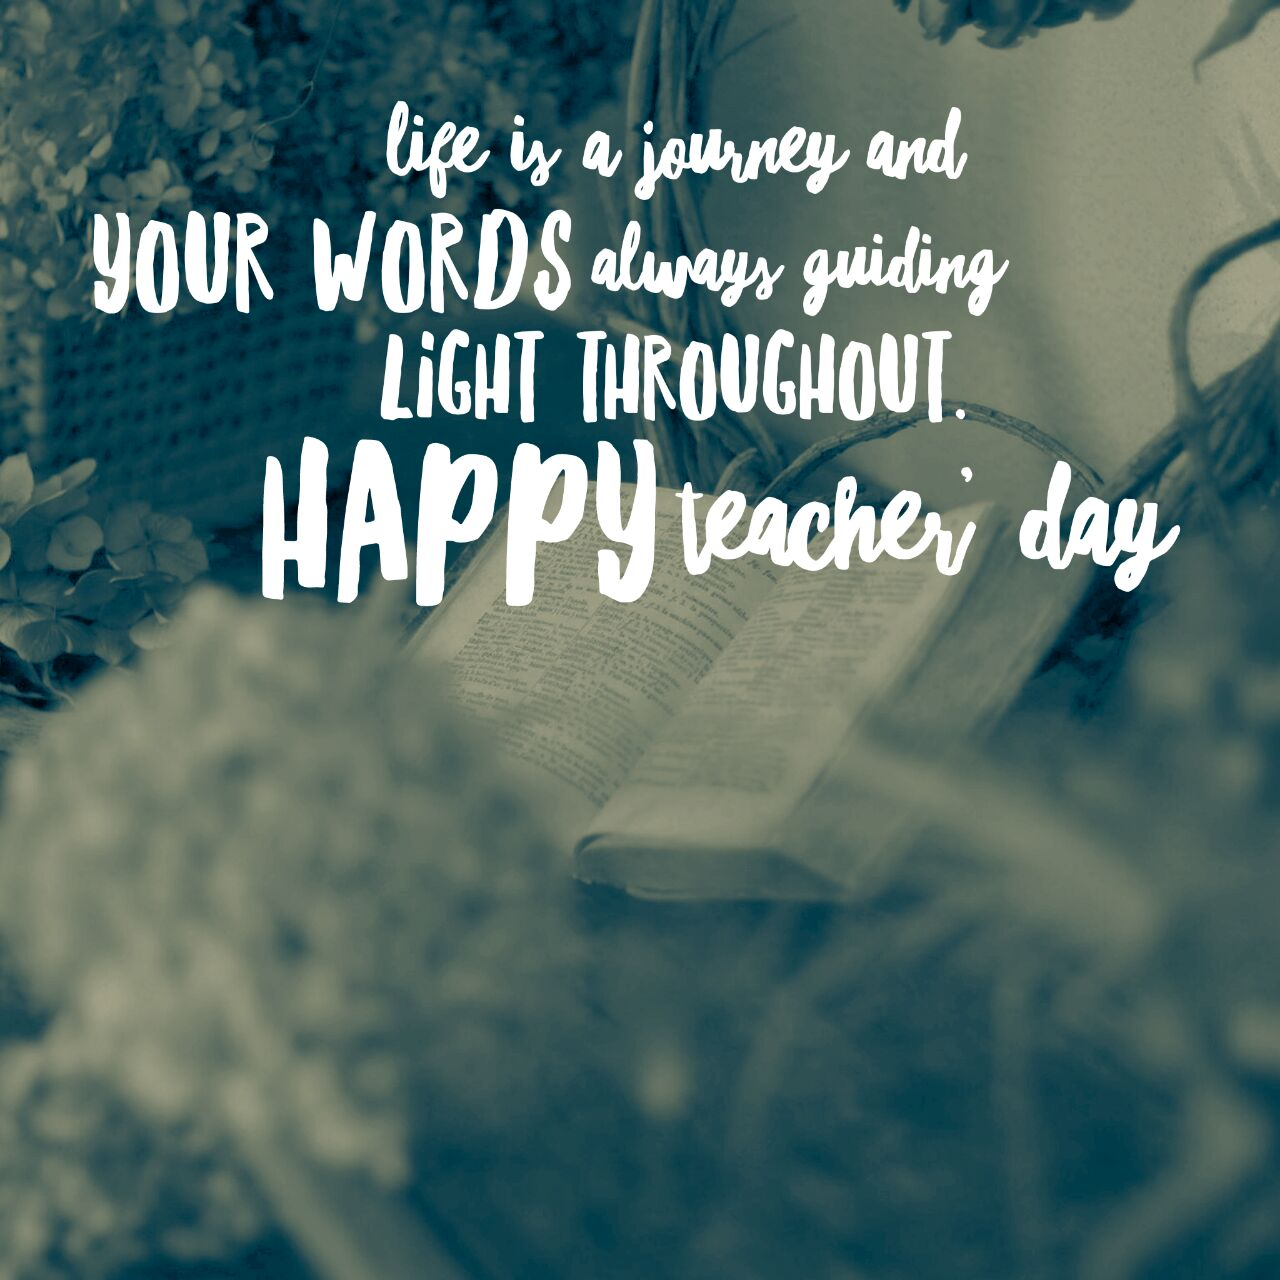 teachers day quotes wishes and gifts teacher s day